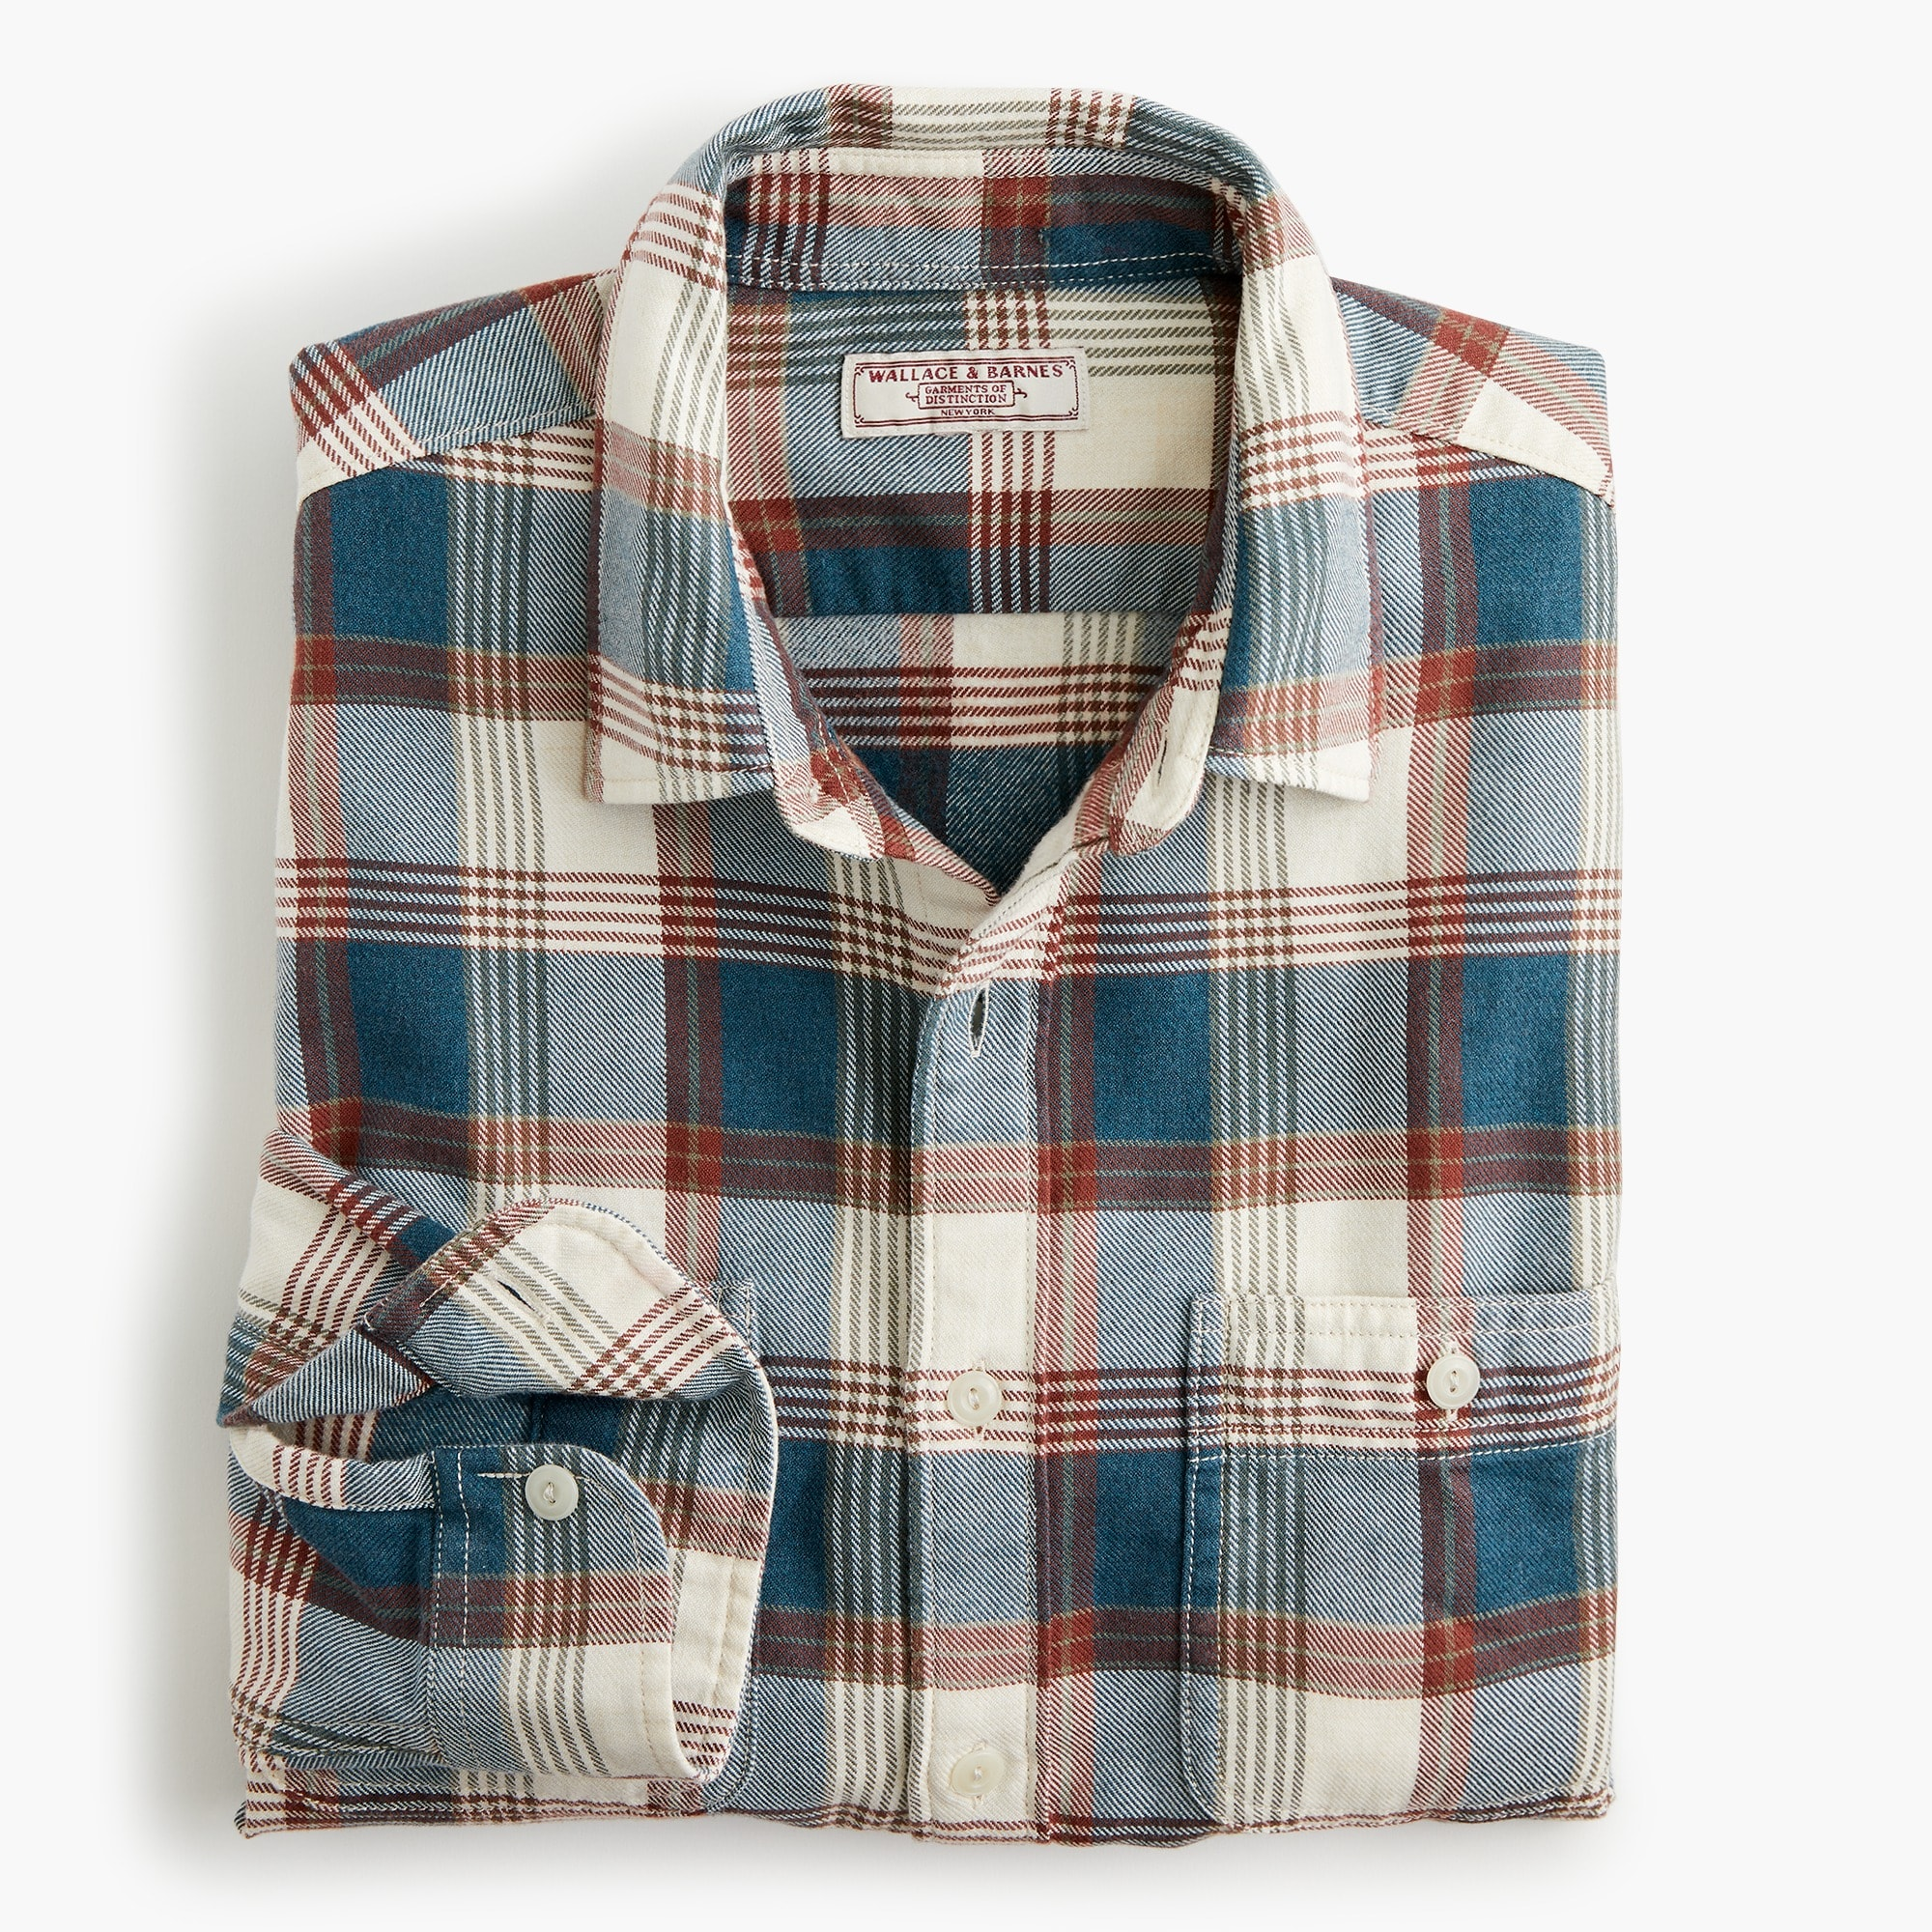 Slim Wallace & Barnes midweight flannel shirt in rustic plaid